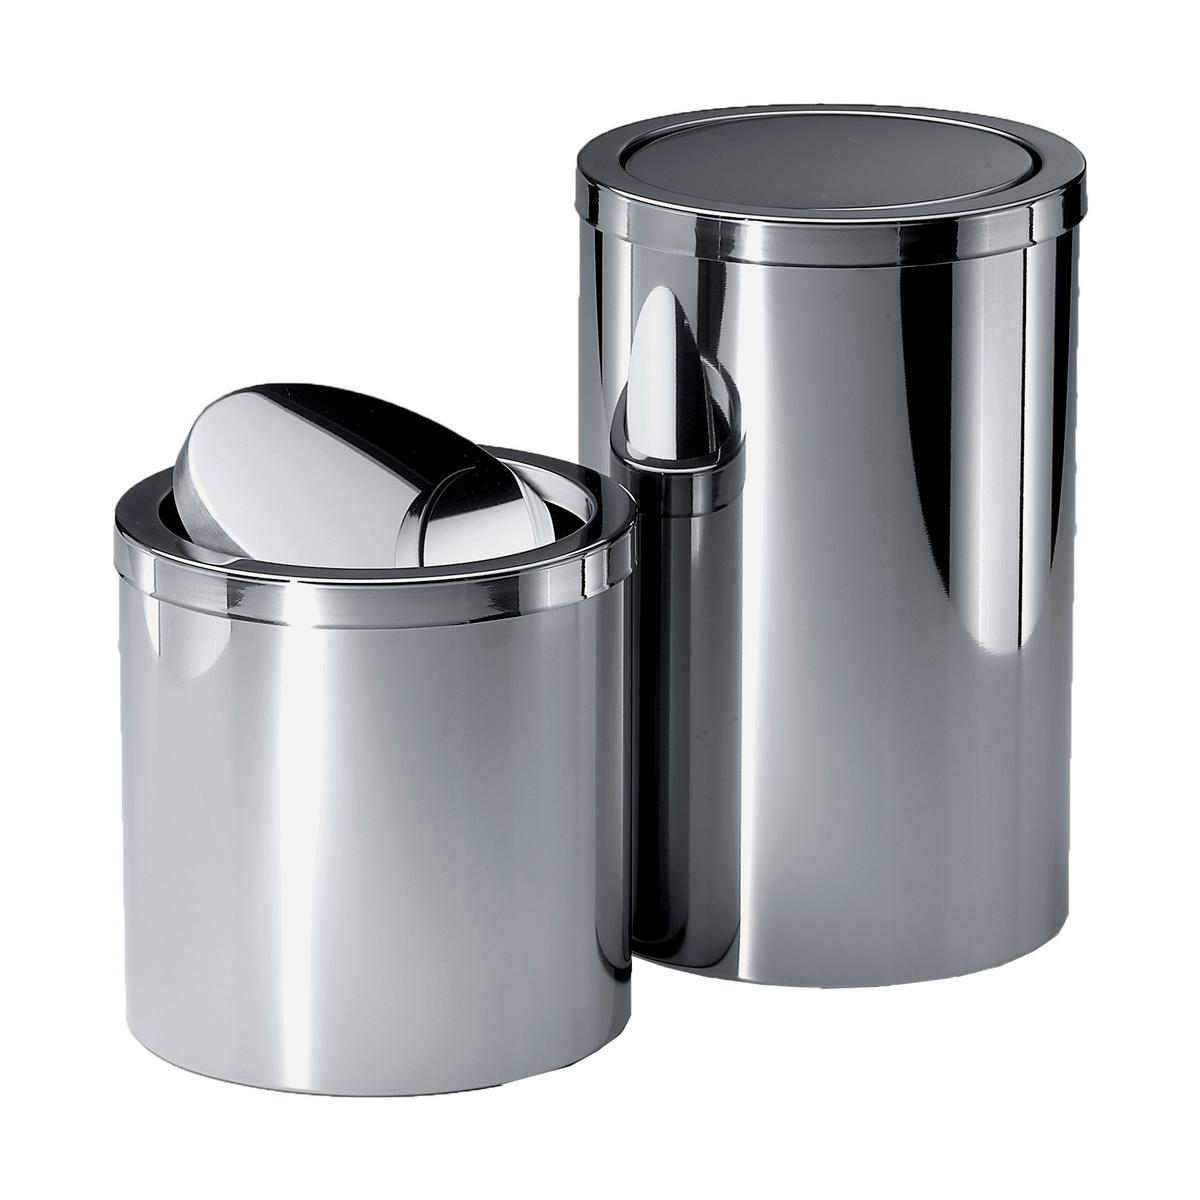 Decor Walther Bathroom Bins With Revolving Cover